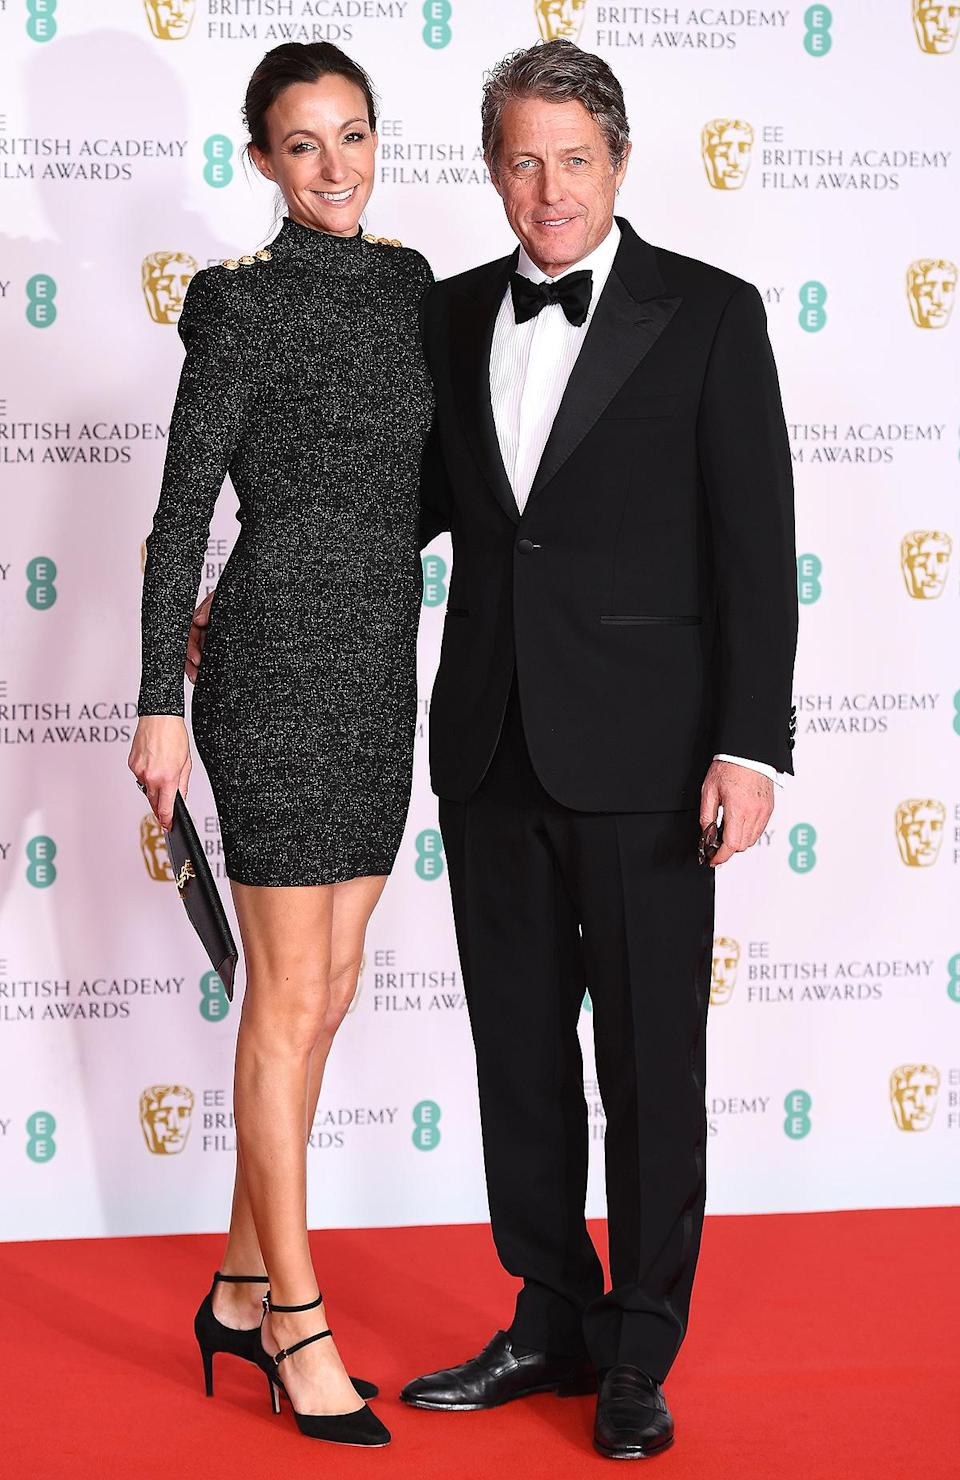 <p>The actor wears a black tuxedo and bow tie, while wife Anna Eberstein wears a shimmery long-sleeve mini dress.</p>